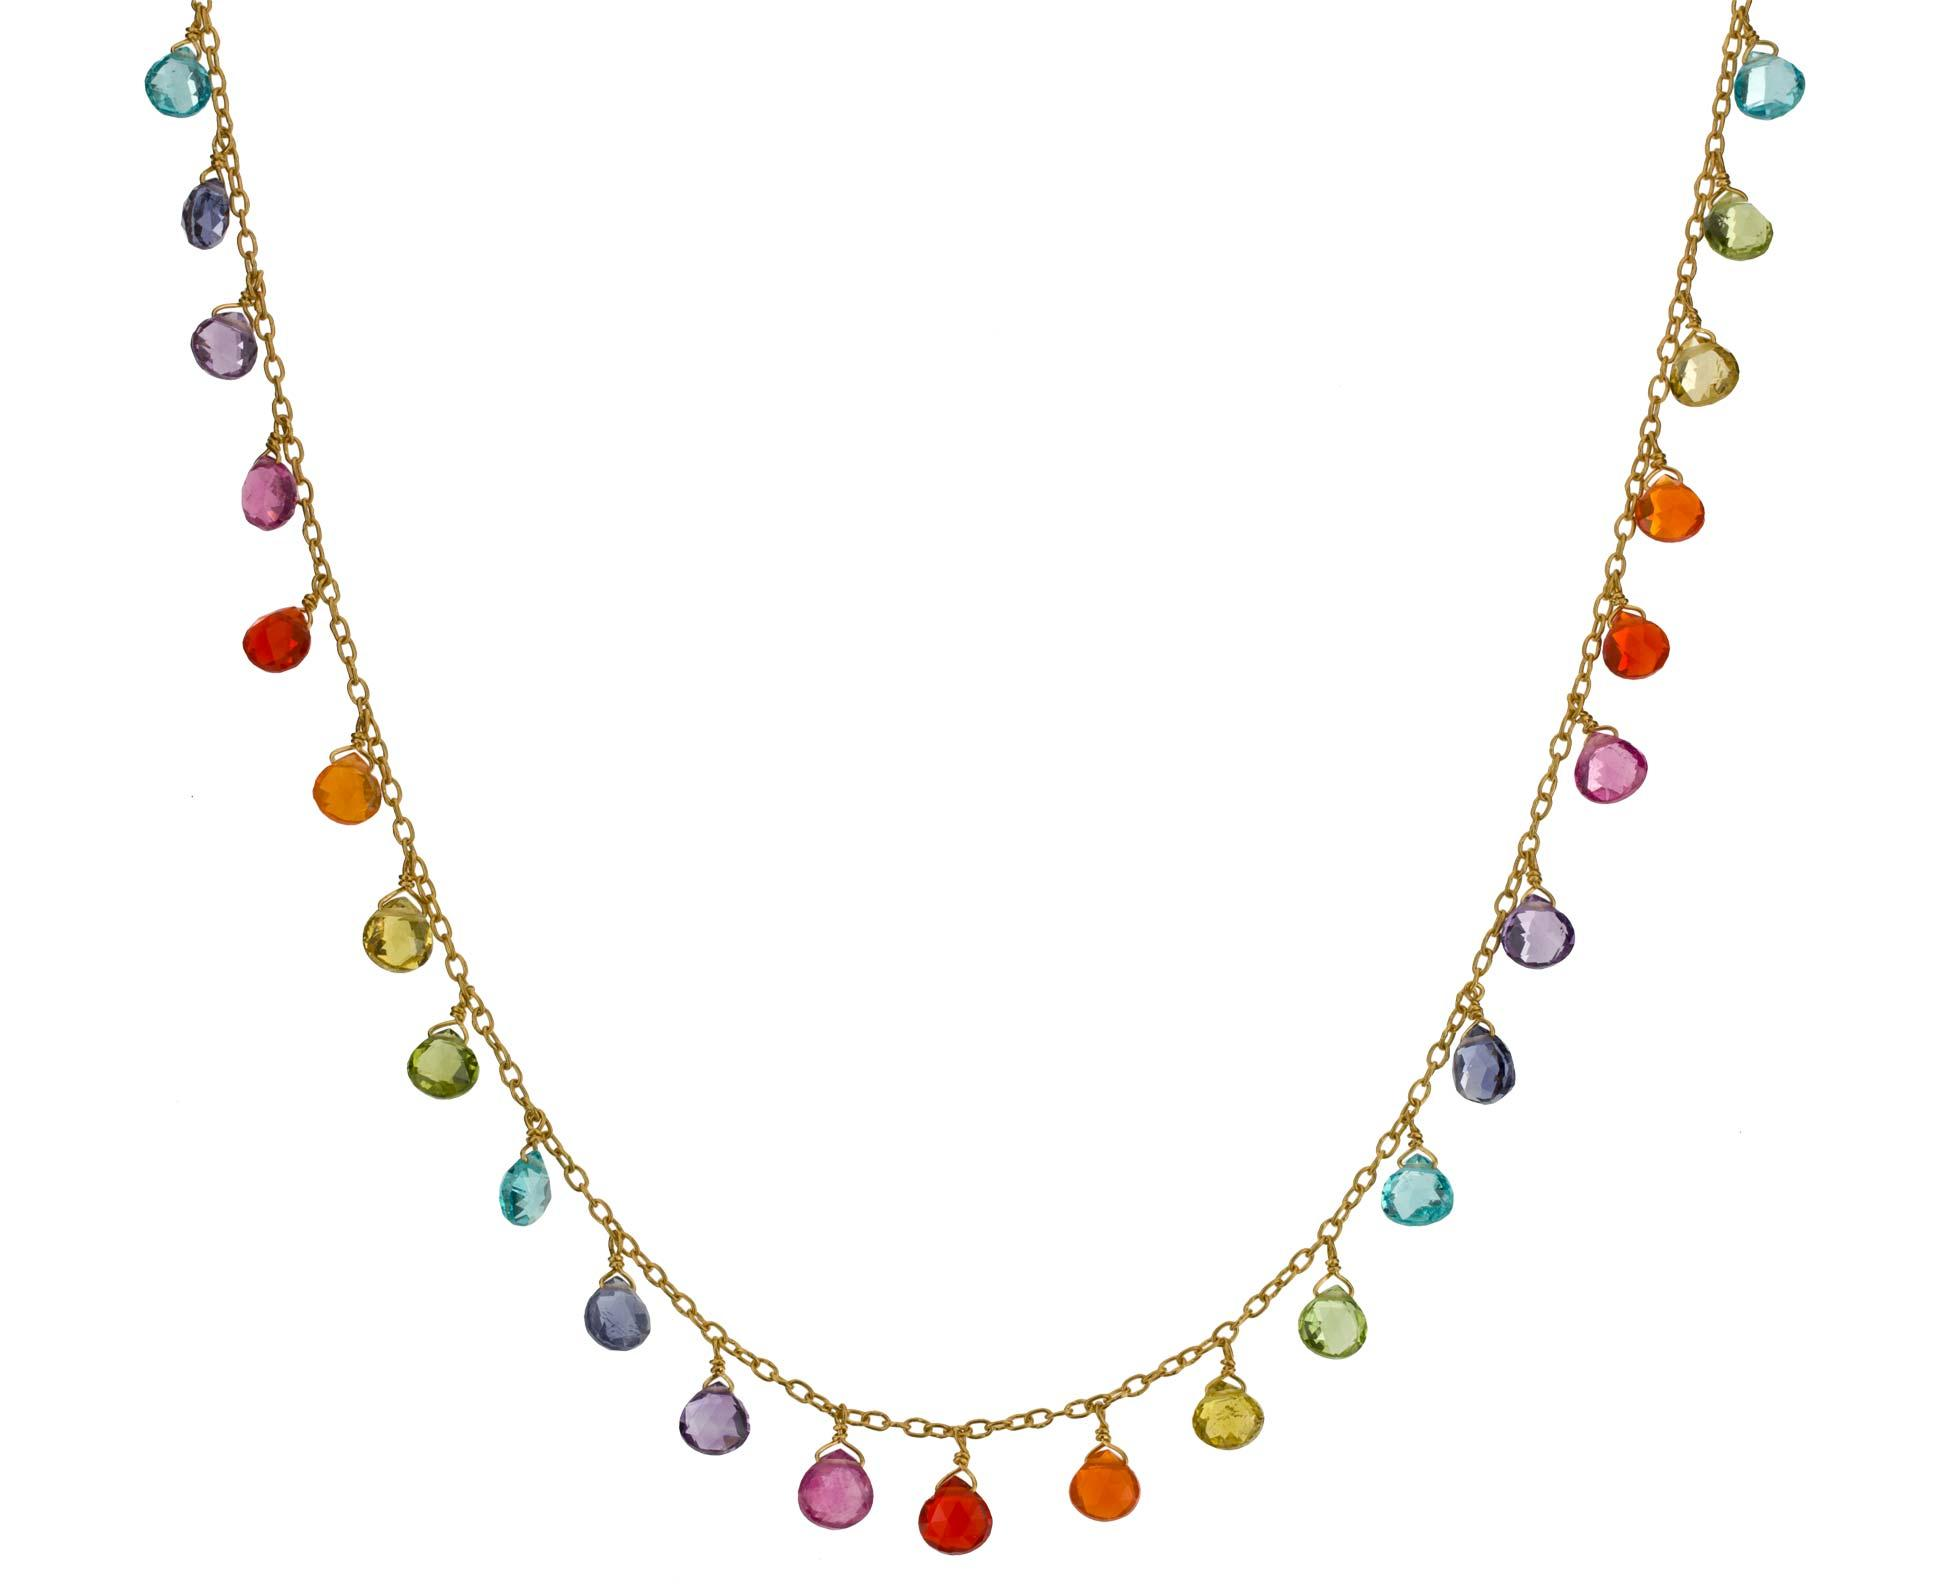 Marine_helene_Taillac_rainbow_necklace